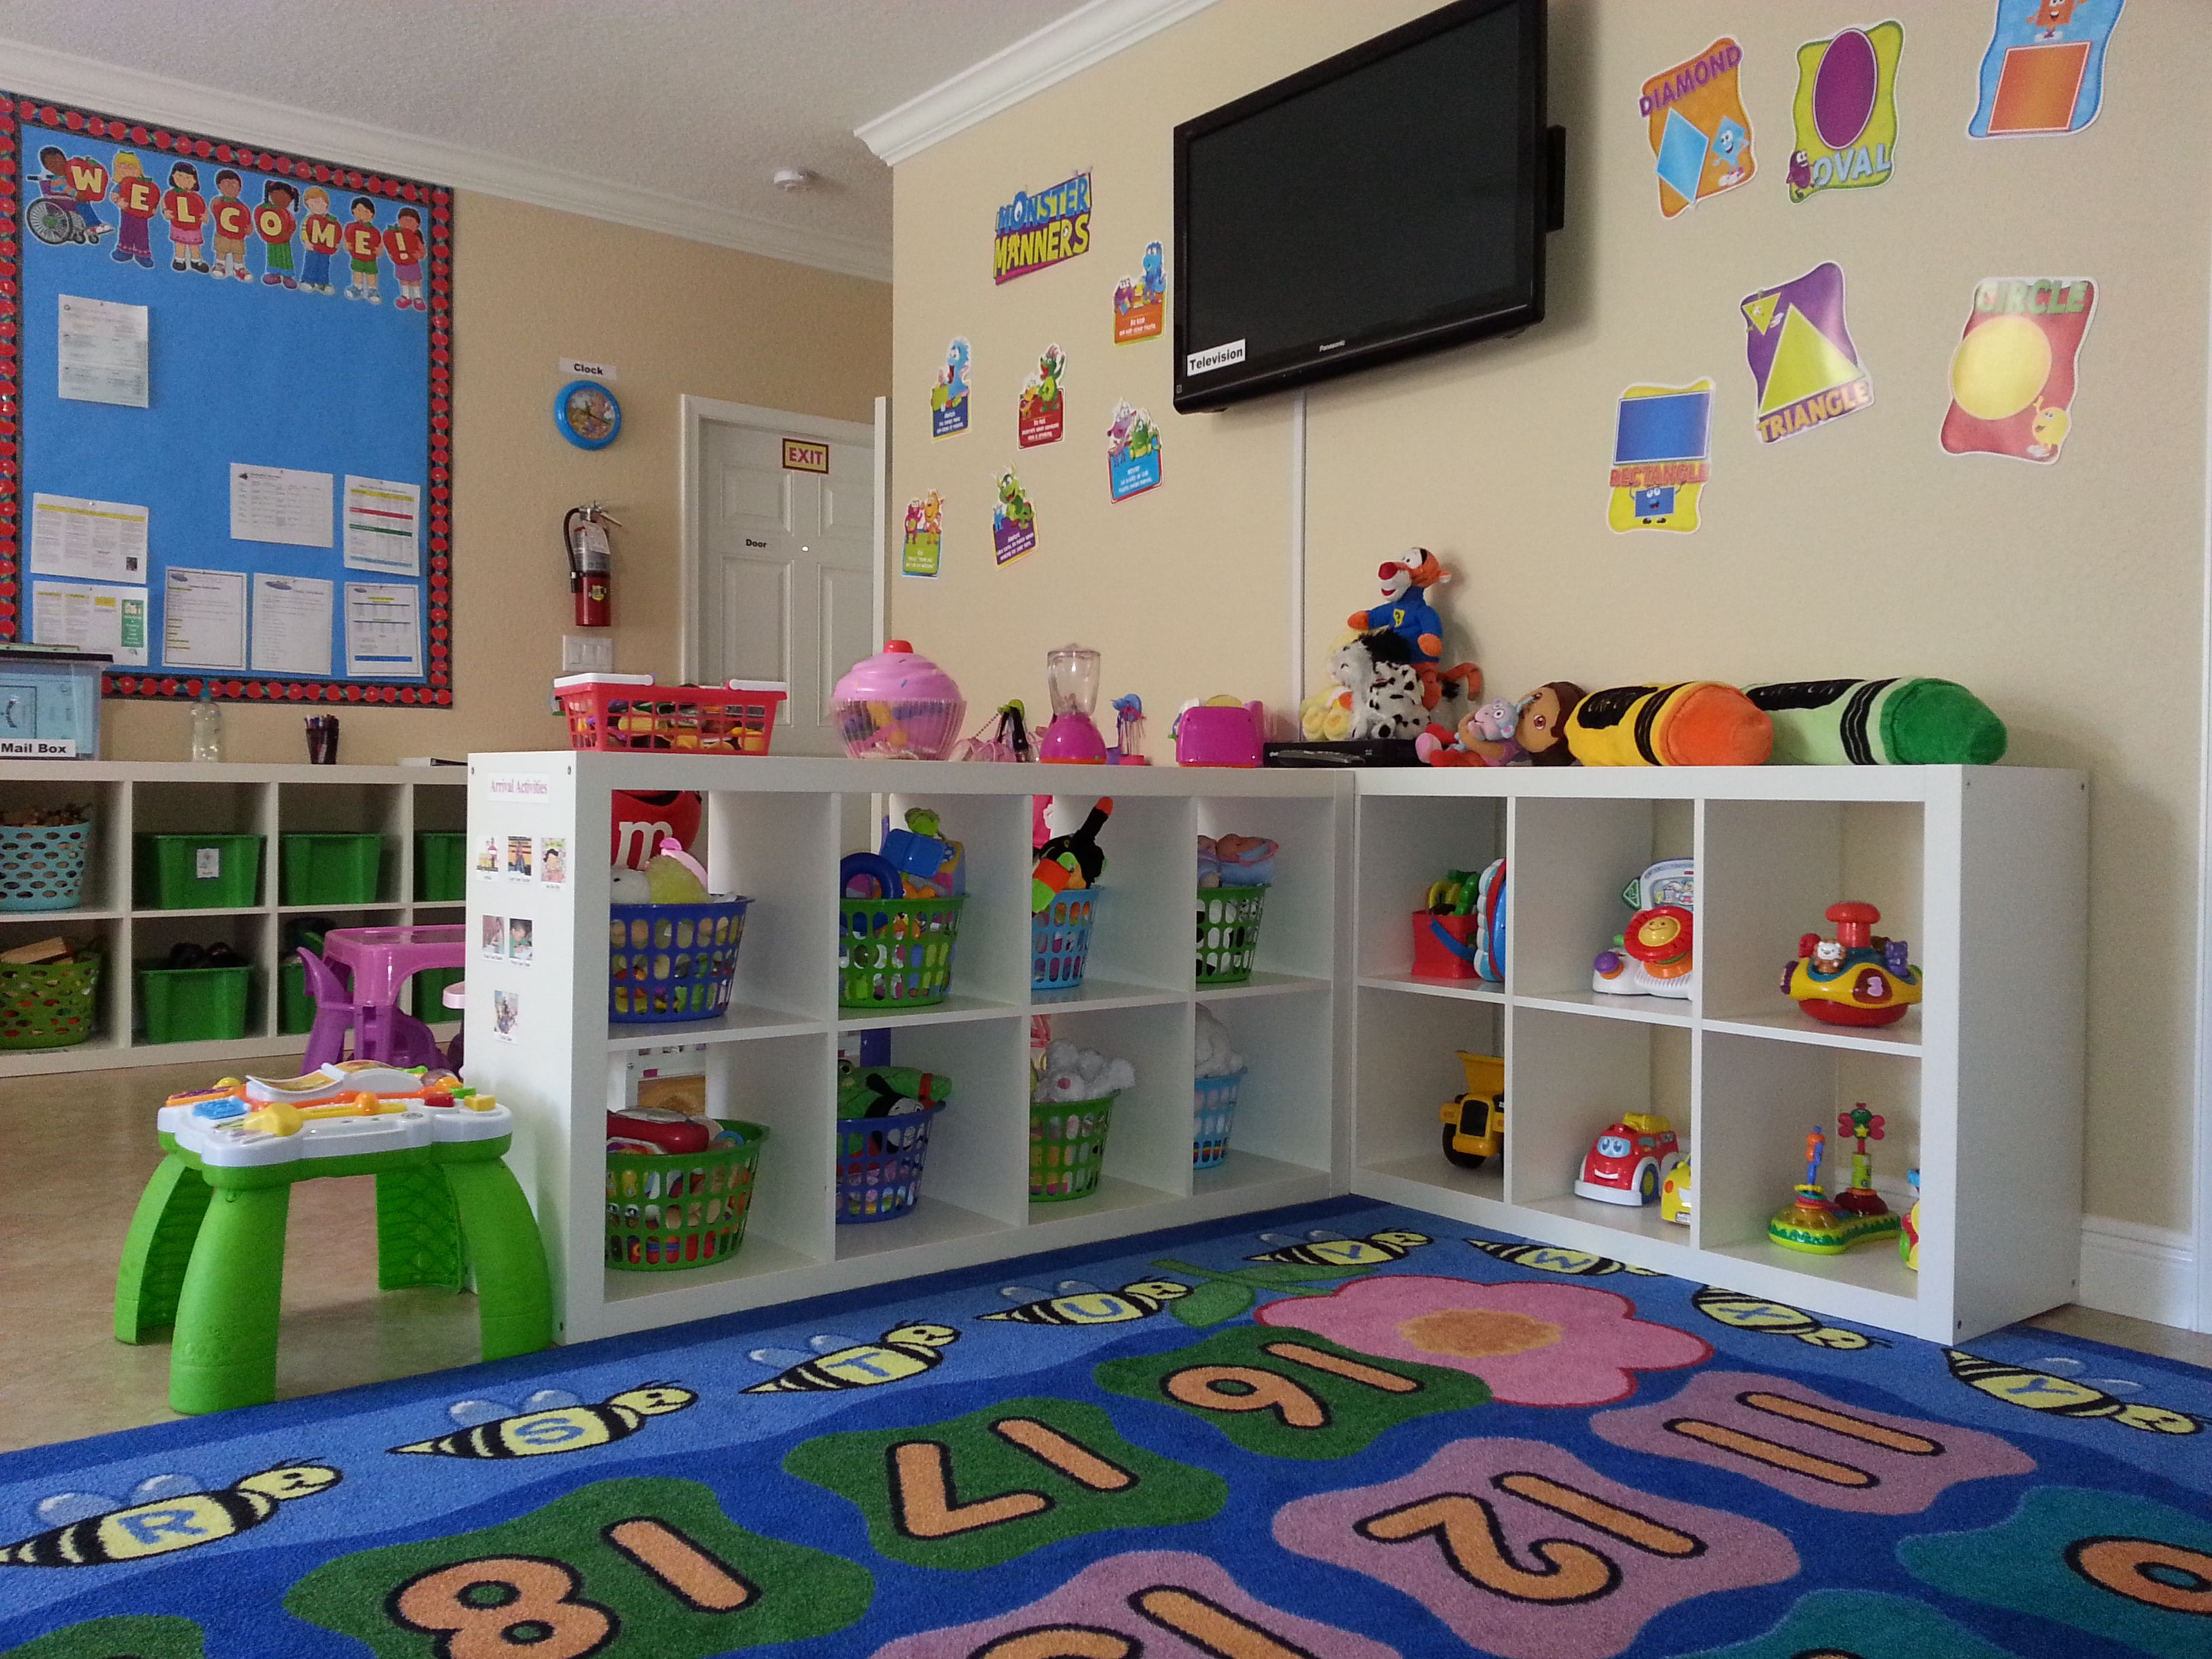 Home Daycare Ideas The Kids Place Preschool Palm Springs Fl Our Toy Are Always Clean And Colorful Daycare Decor Daycare Design Daycare Setup